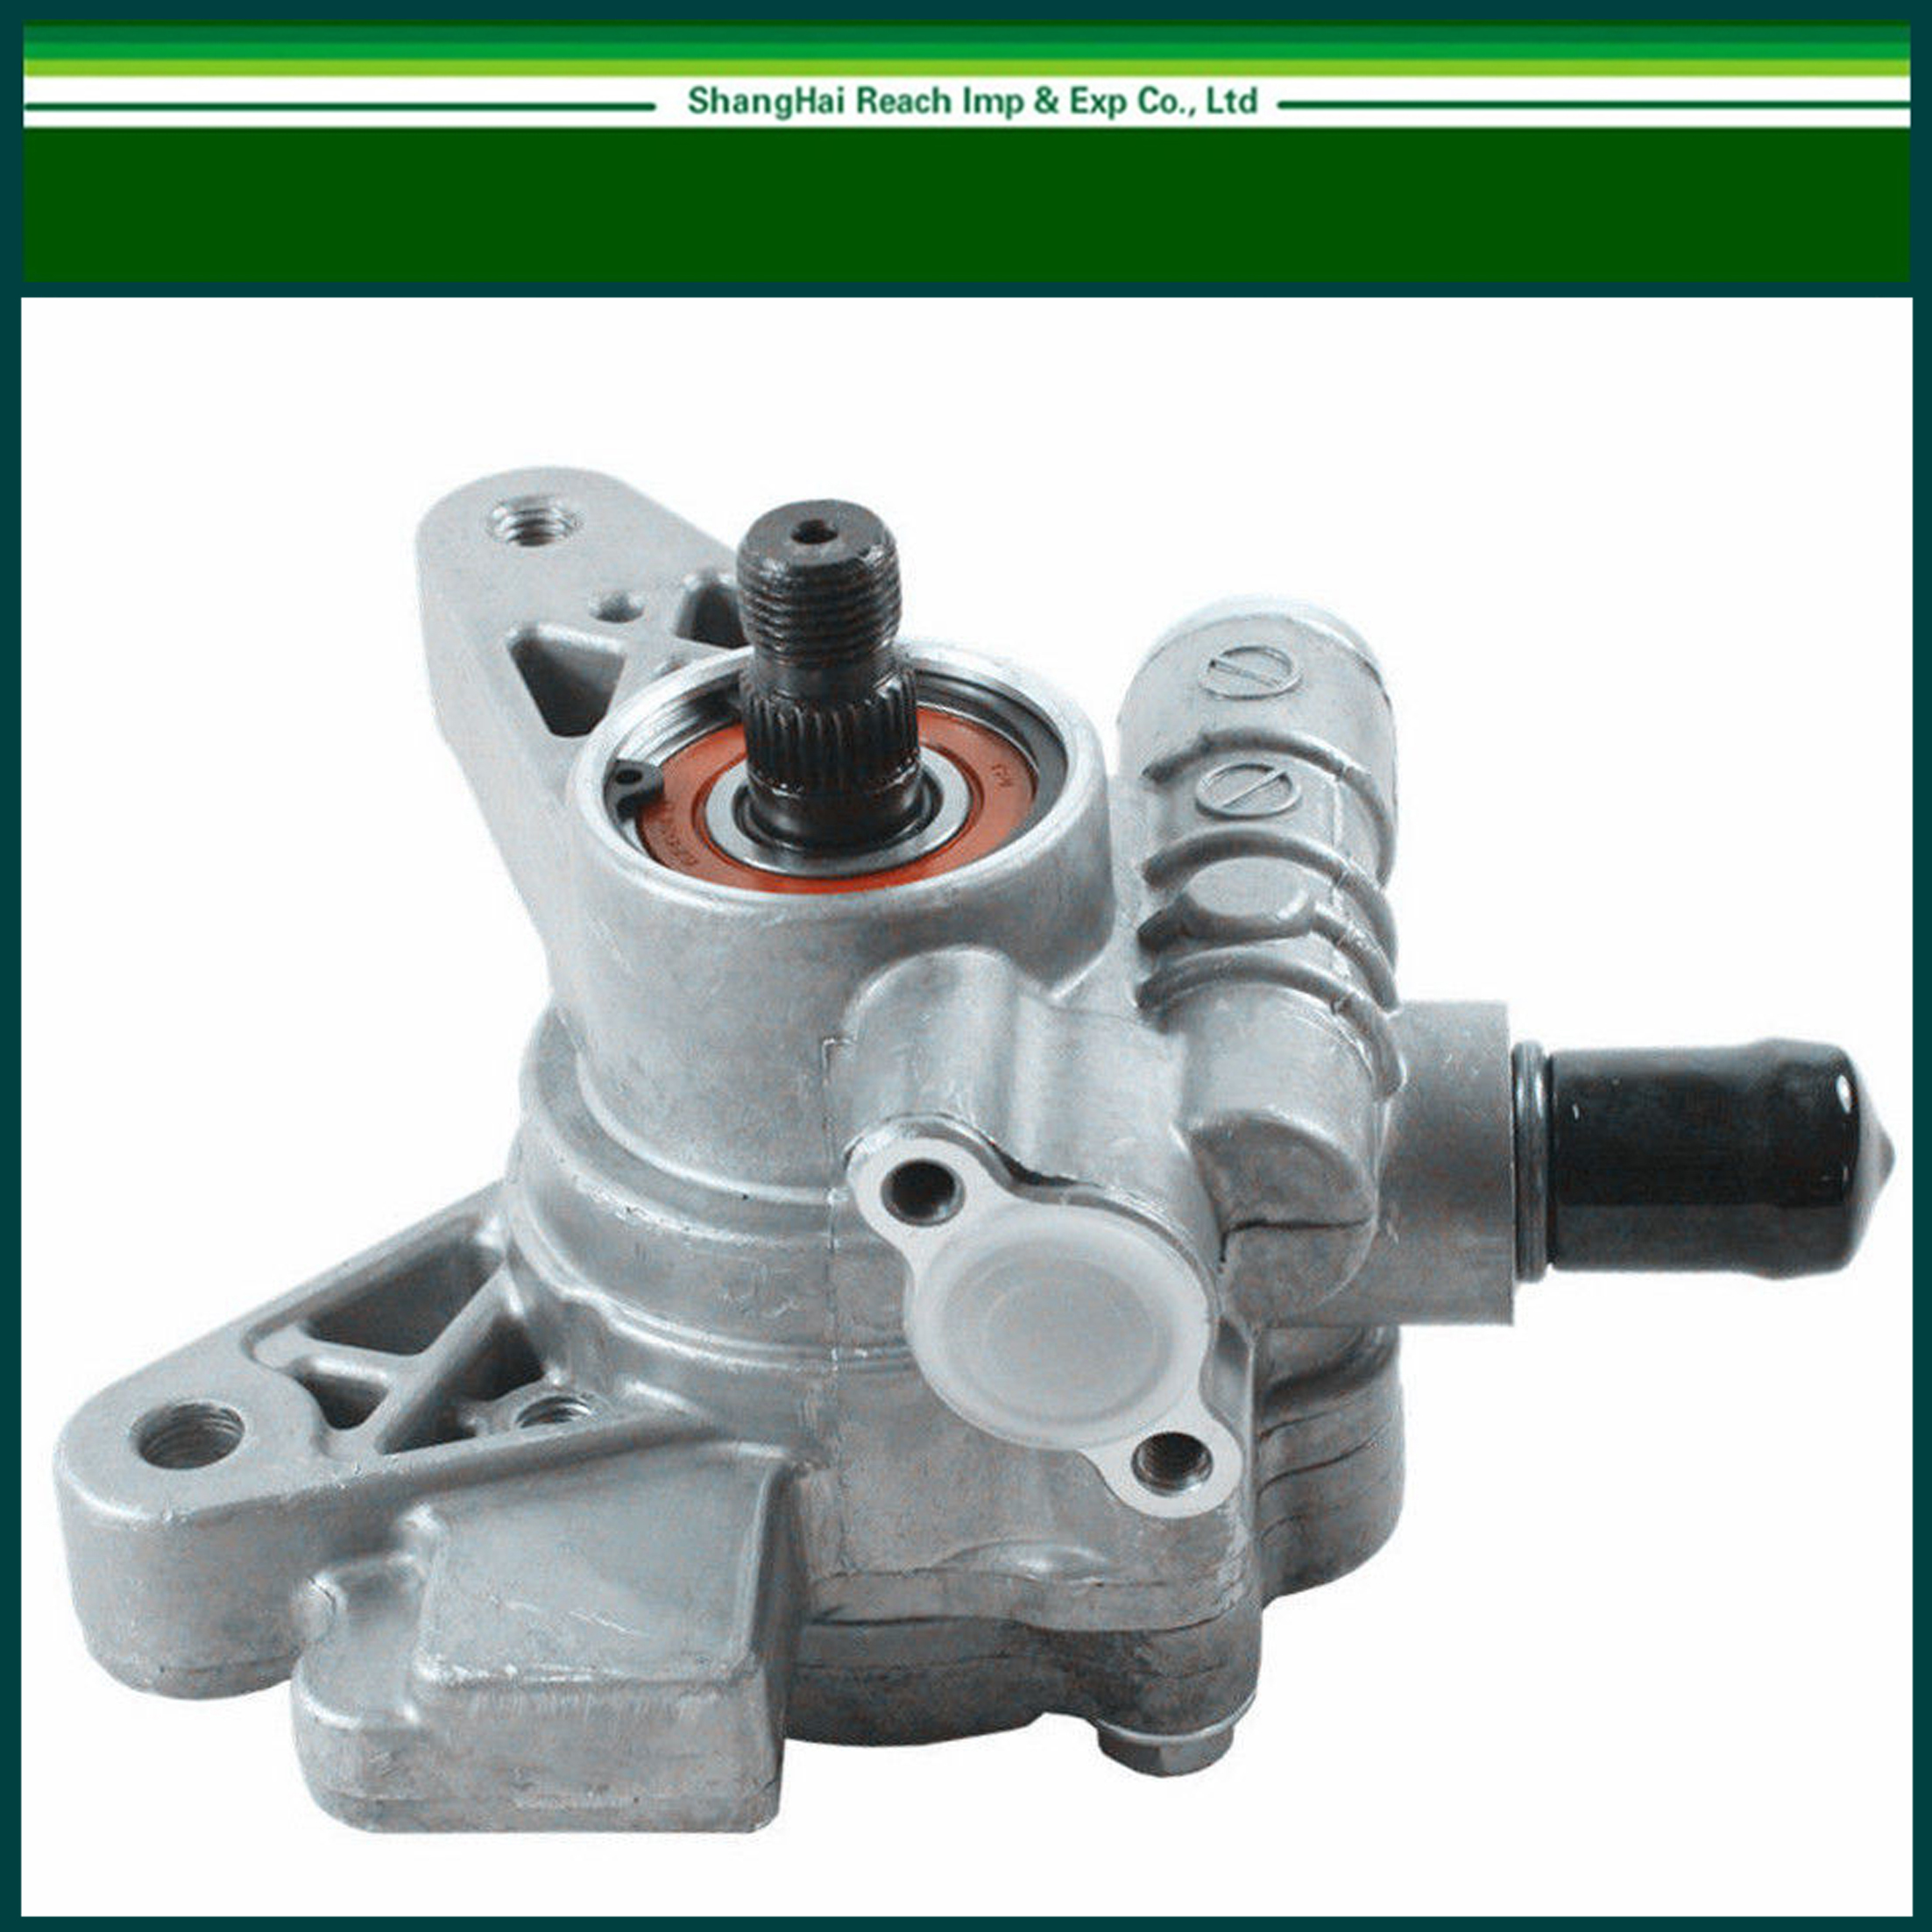 Ignition Distributor For Acura Integra Honda Civic Gs R 18l 16 1992 Power Steering Pump New Cr V Element Acu